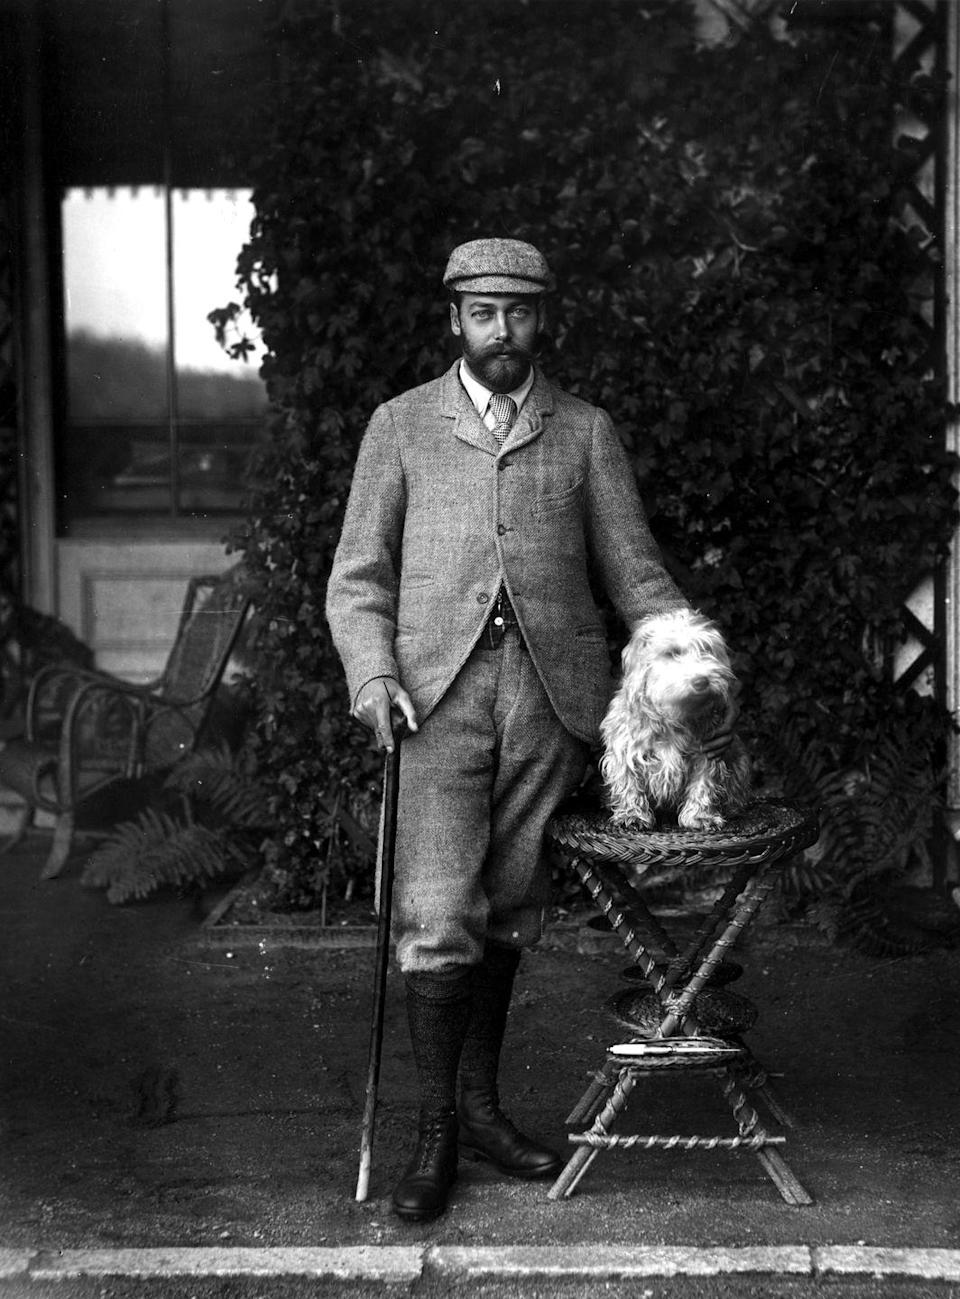 <p>King George V had his portrait taken with a dog, even back when photography was a rarity.</p>